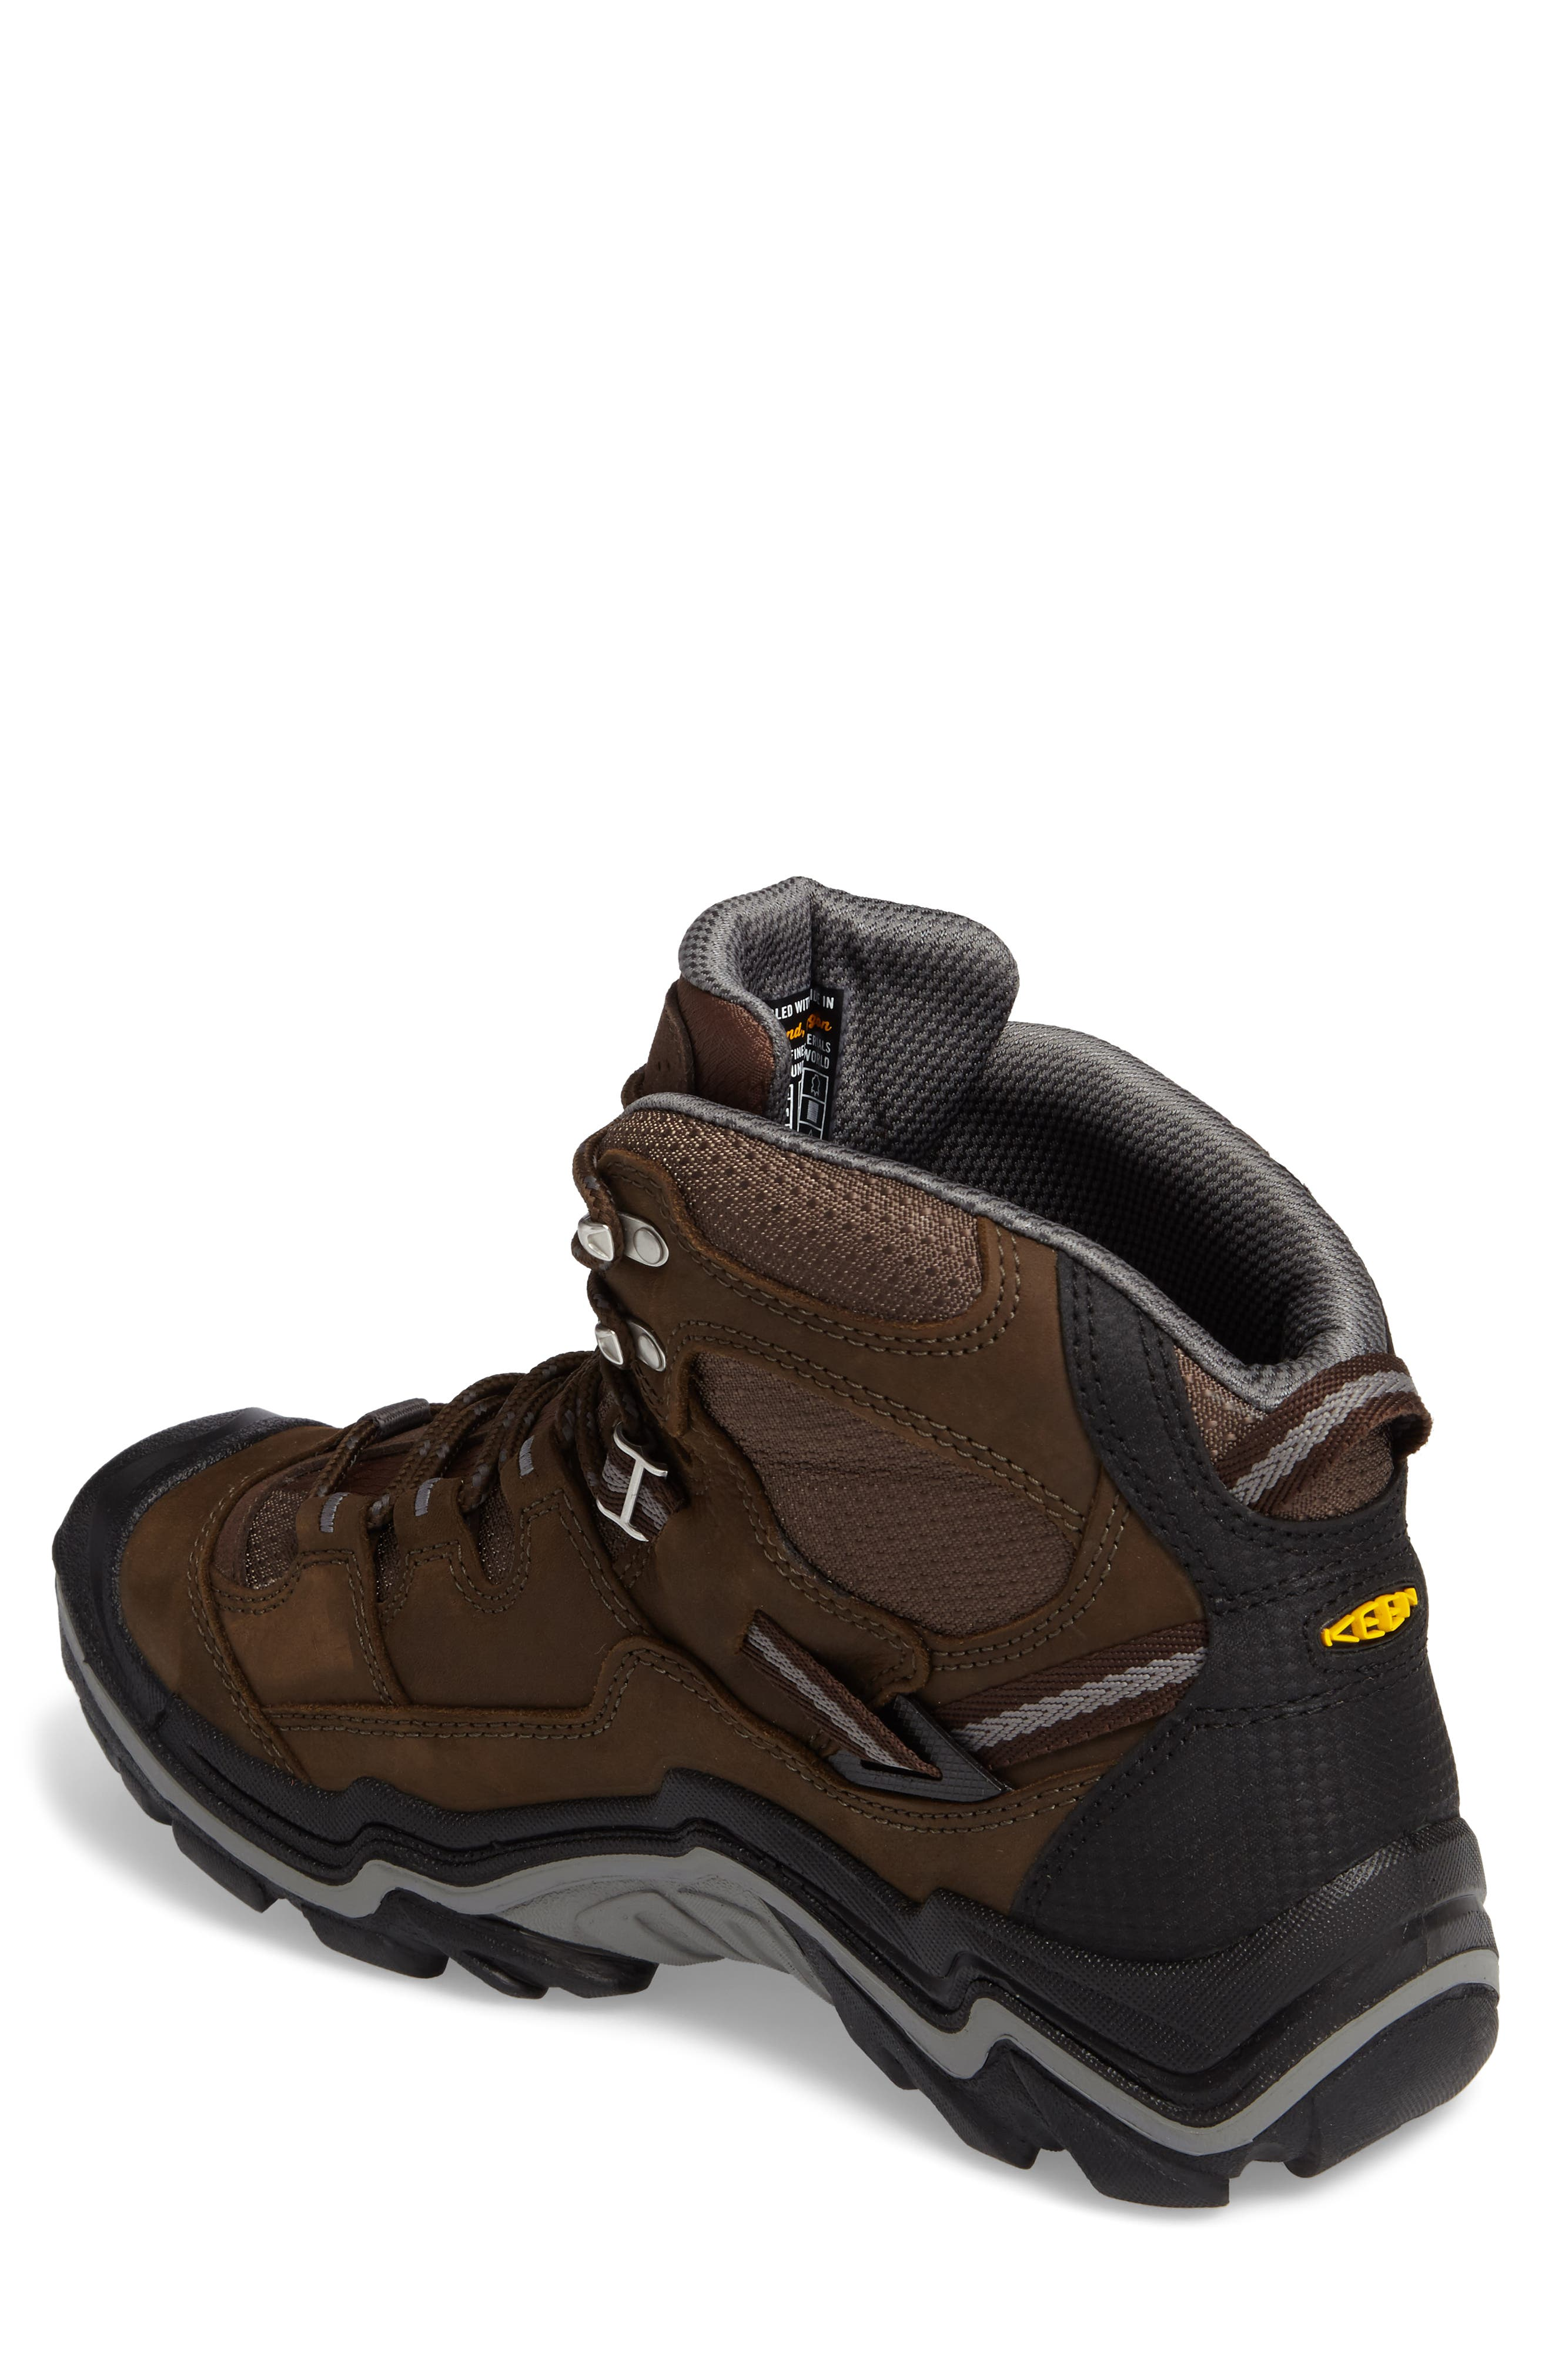 Durand Mid Waterproof Hiking Boot,                             Alternate thumbnail 2, color,                             BROWN LEATHER